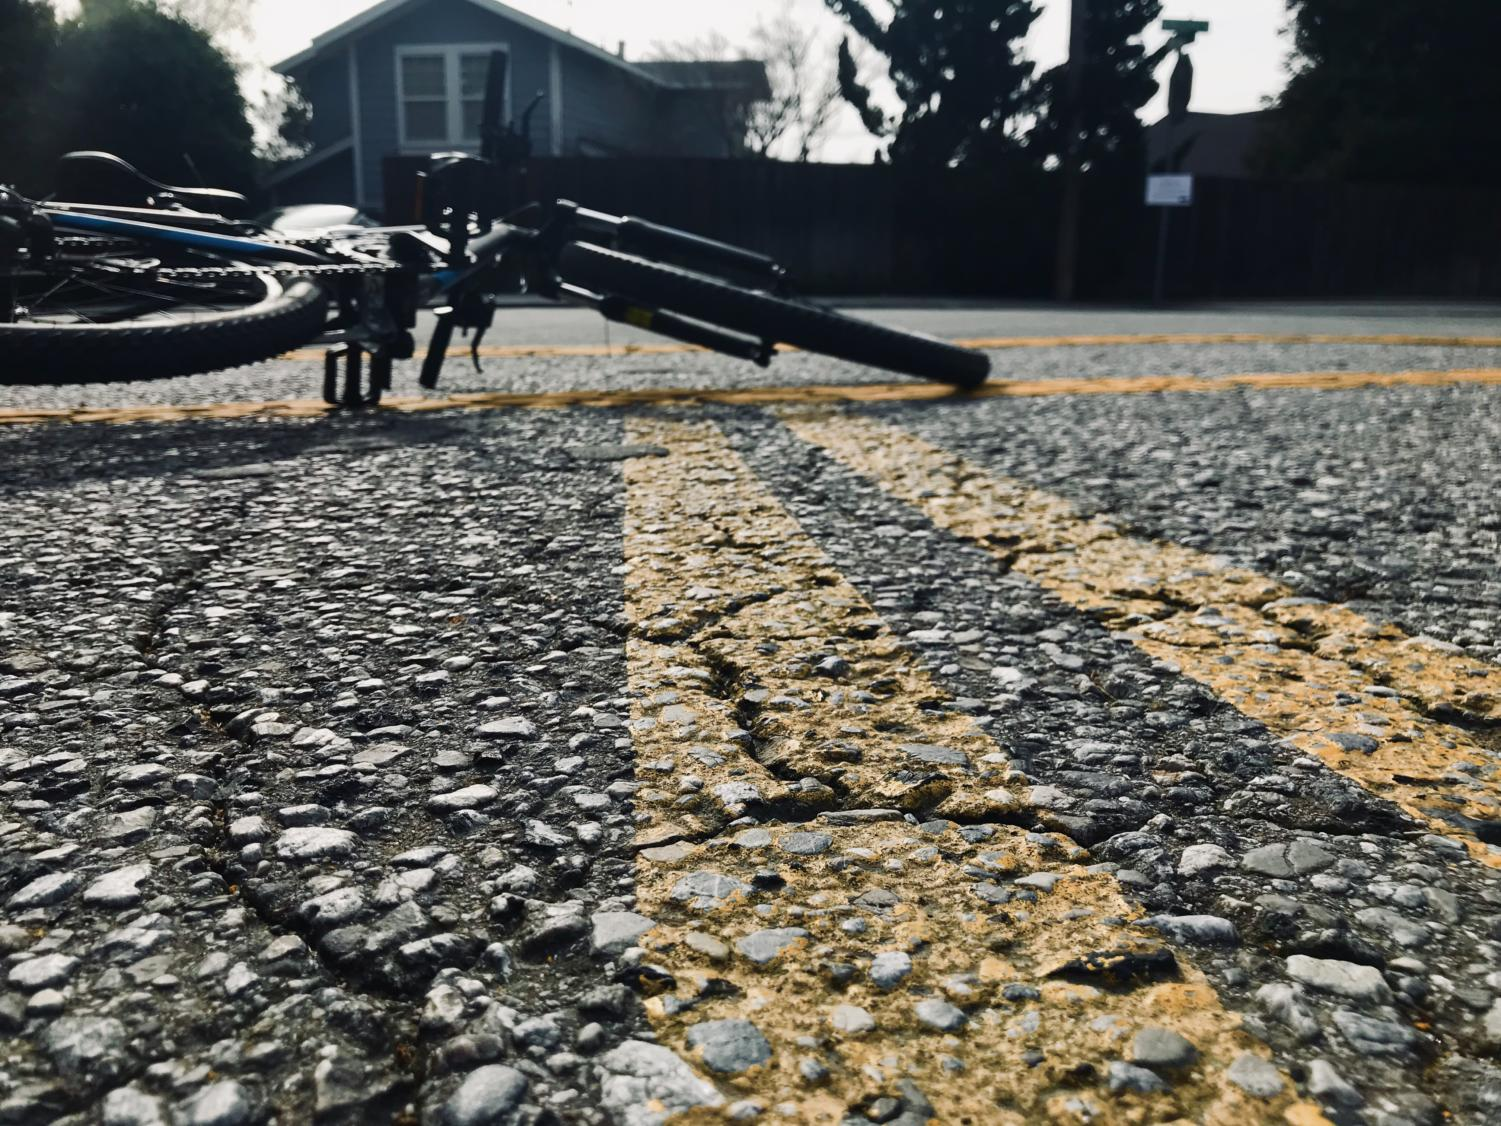 Cracks in roads can cause bike accidents.